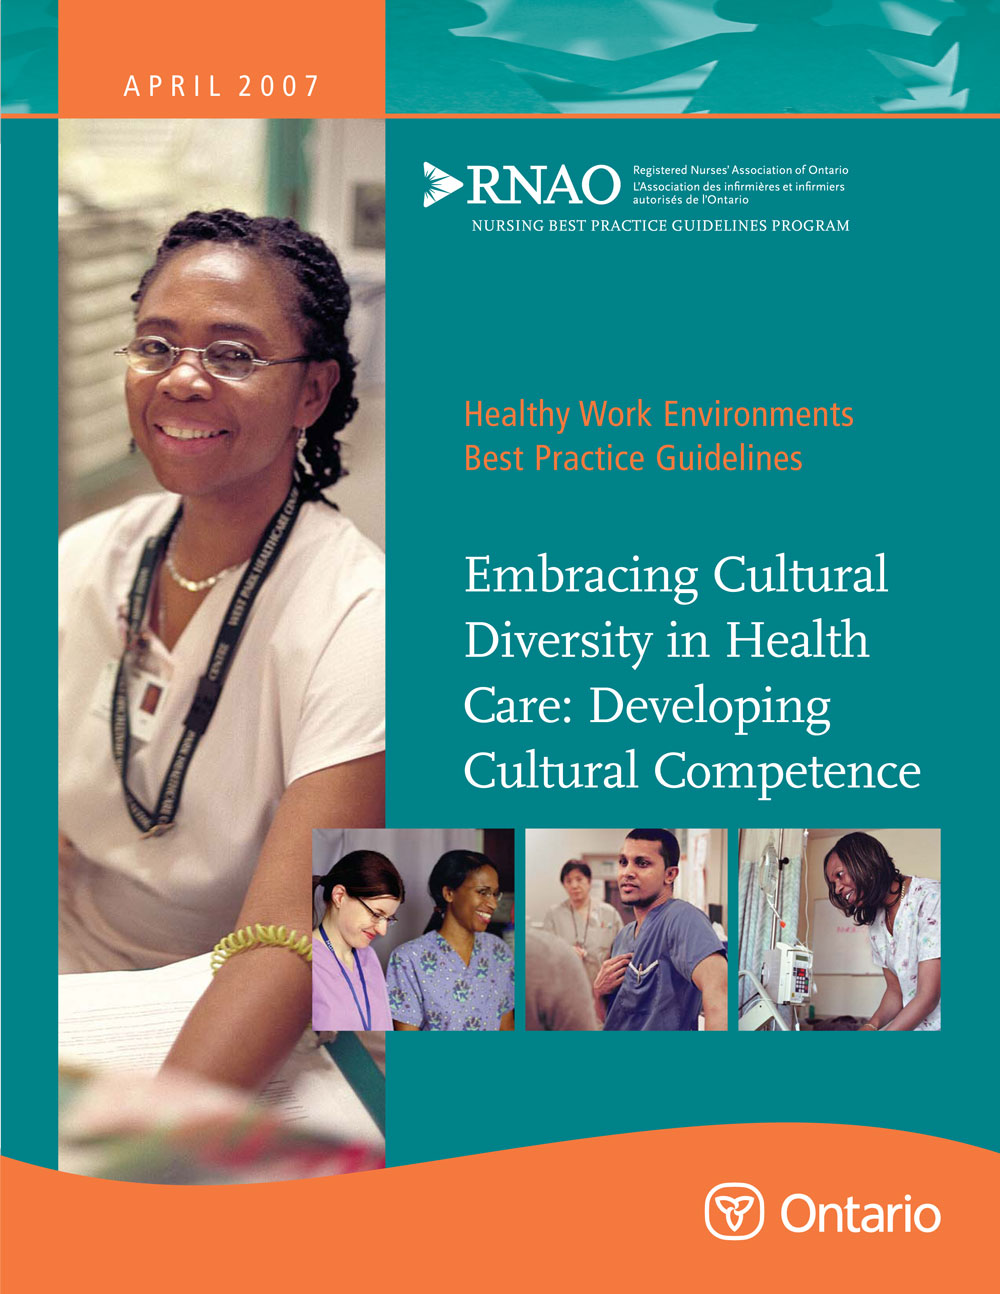 embracing cultural diversity in health care  developing cultural competence